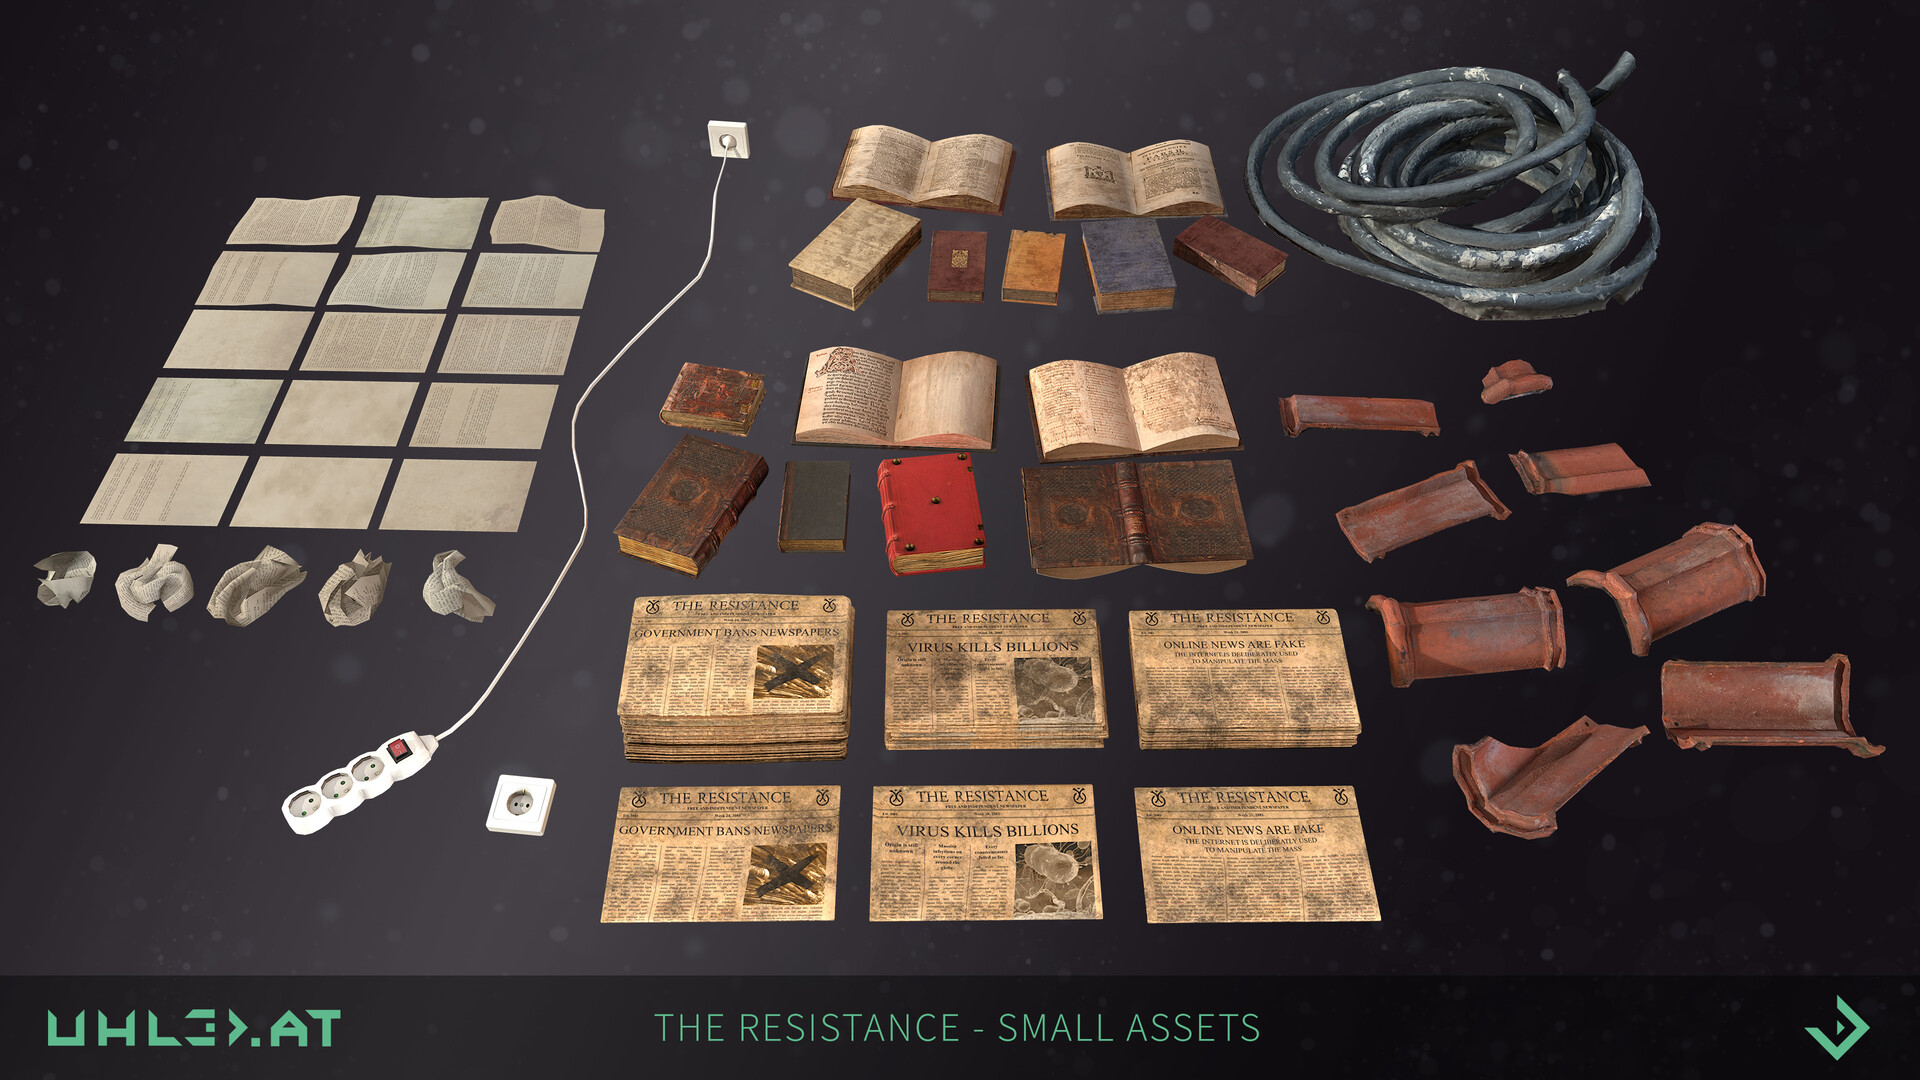 Dominik uhl the resistance small assets 01